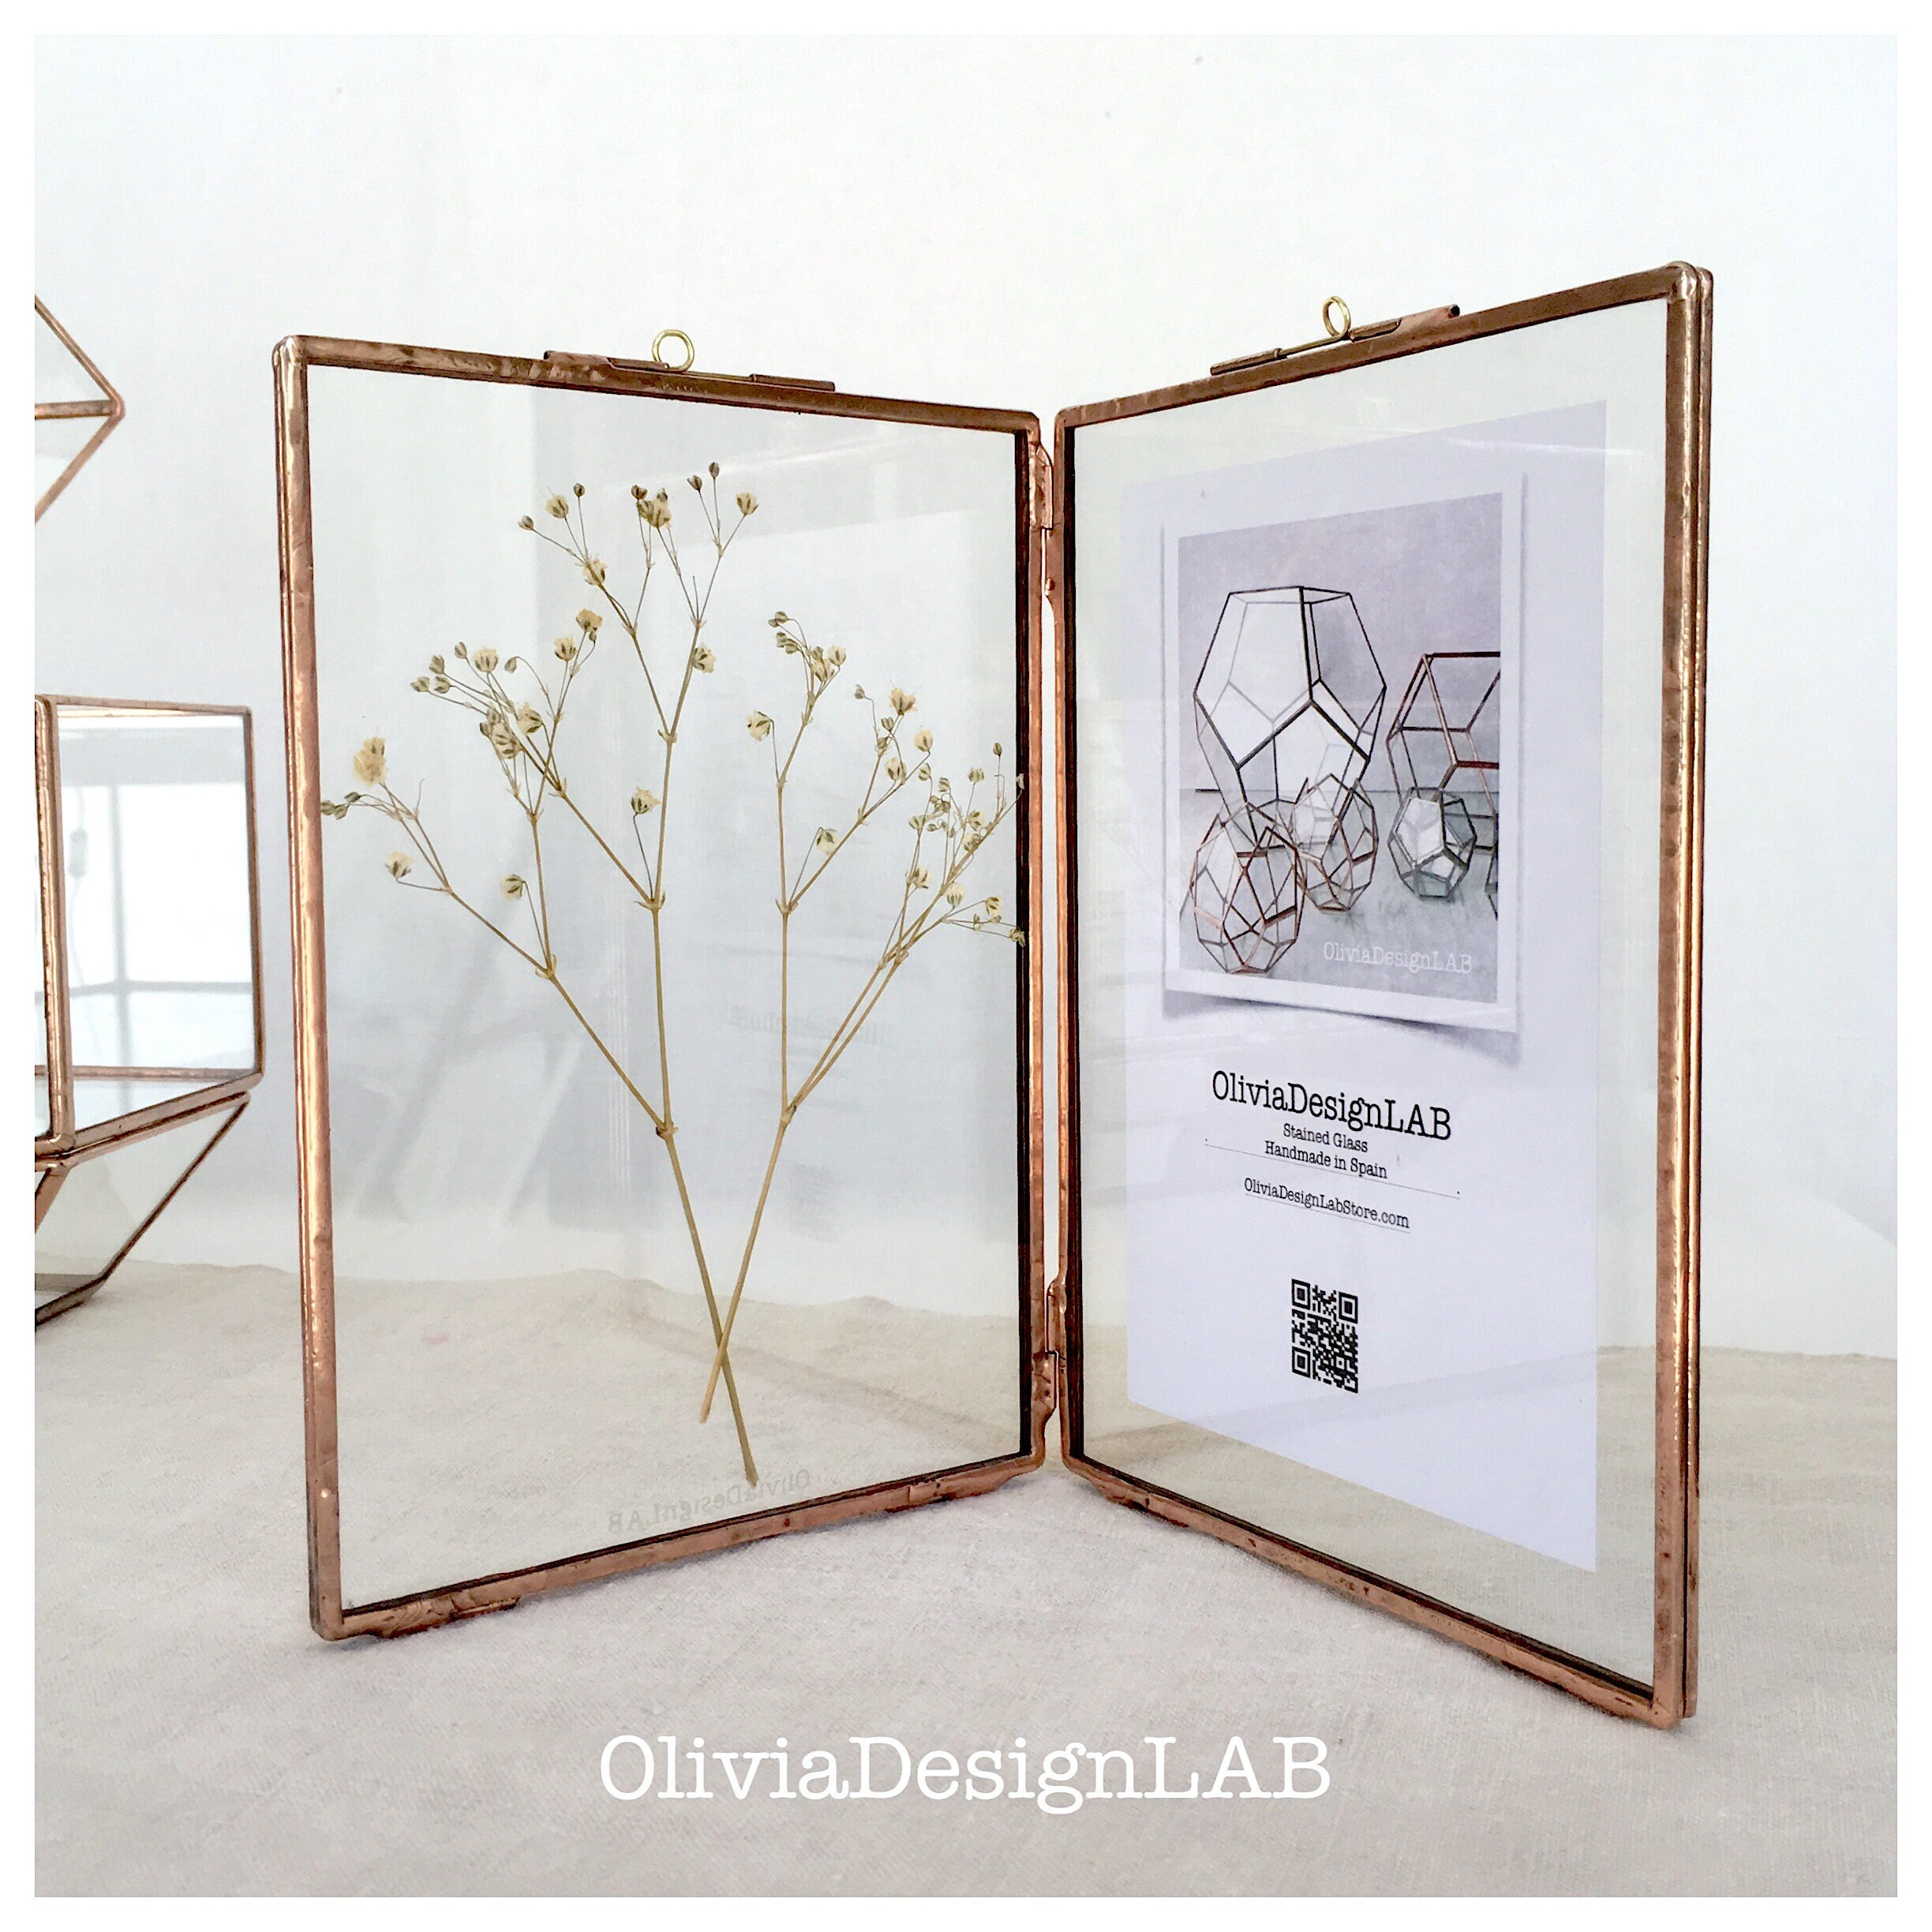 Diptych glass frame 7 x 5 inches each frame. Double frame, handmade ...